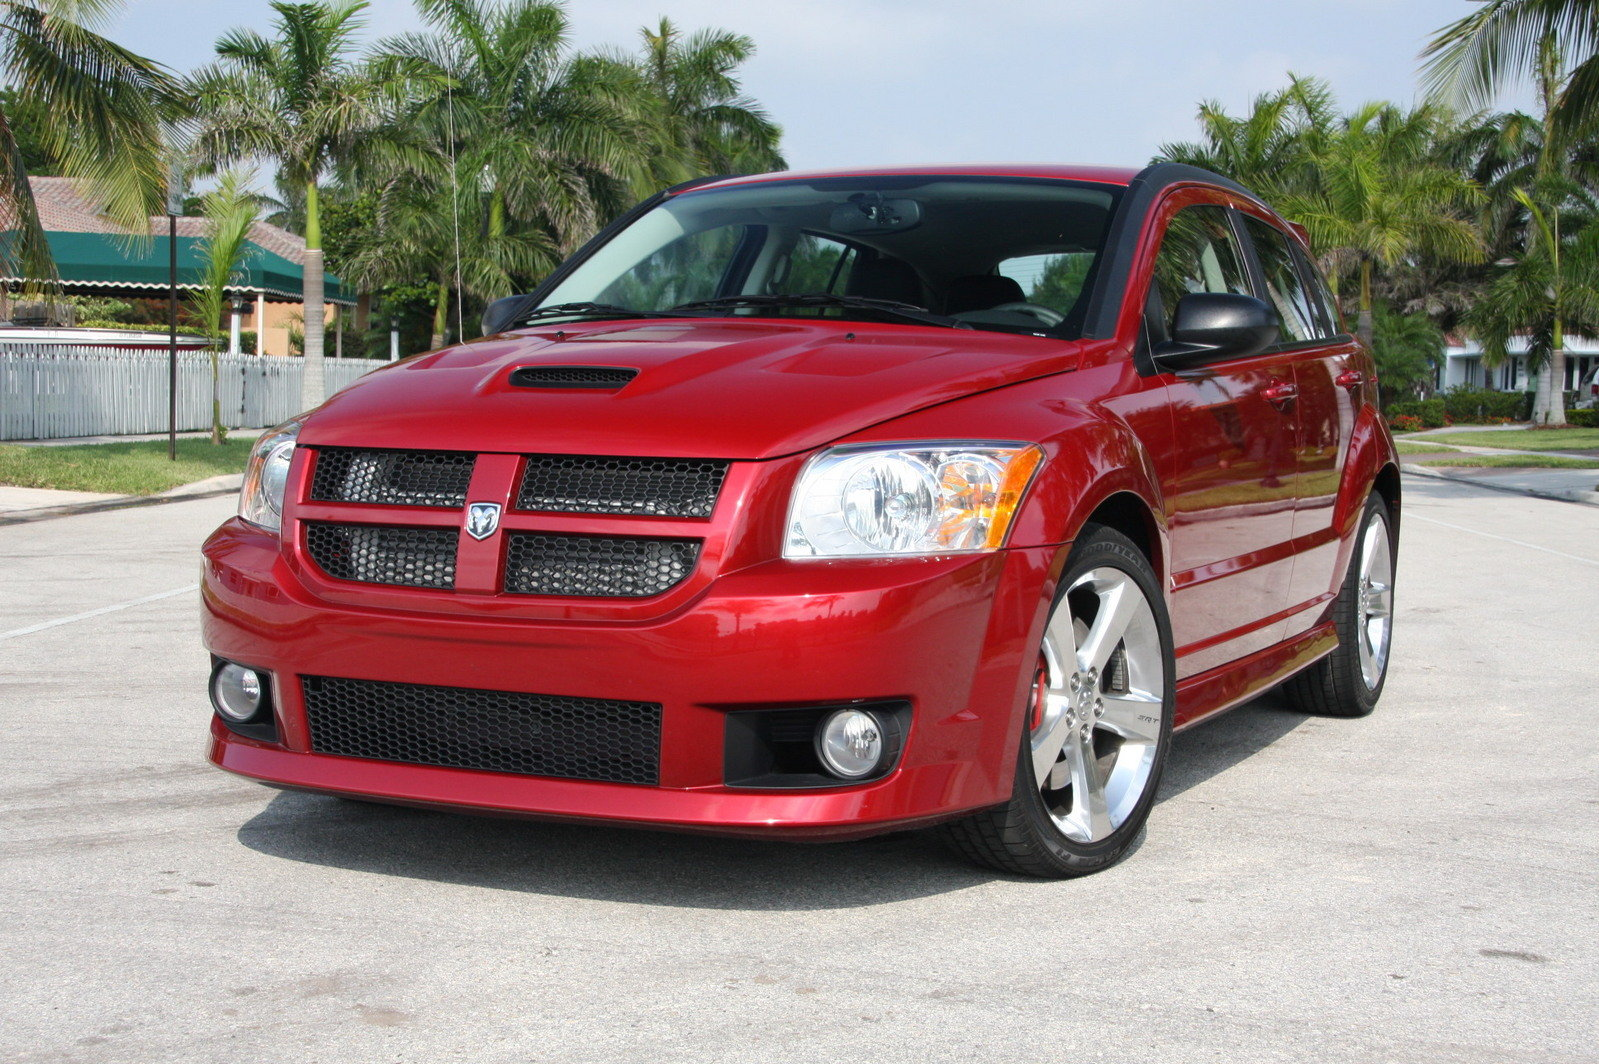 2008 dodge caliber srt 4 picture 249334 car review. Black Bedroom Furniture Sets. Home Design Ideas